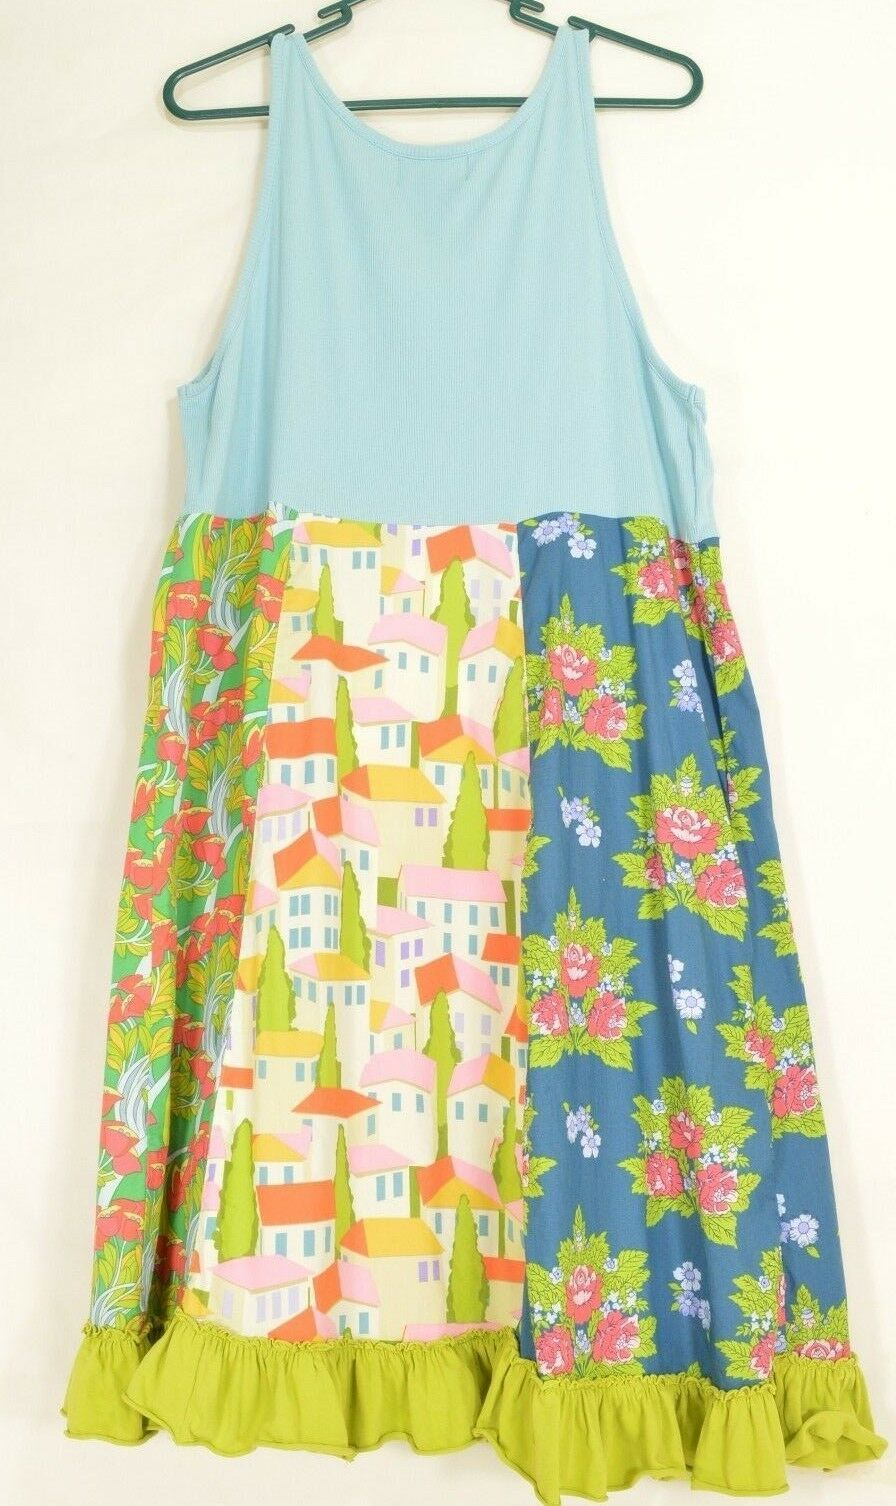 Matilda Jane dress XL Good Hart Farmers Market tank dress colorful flouncy